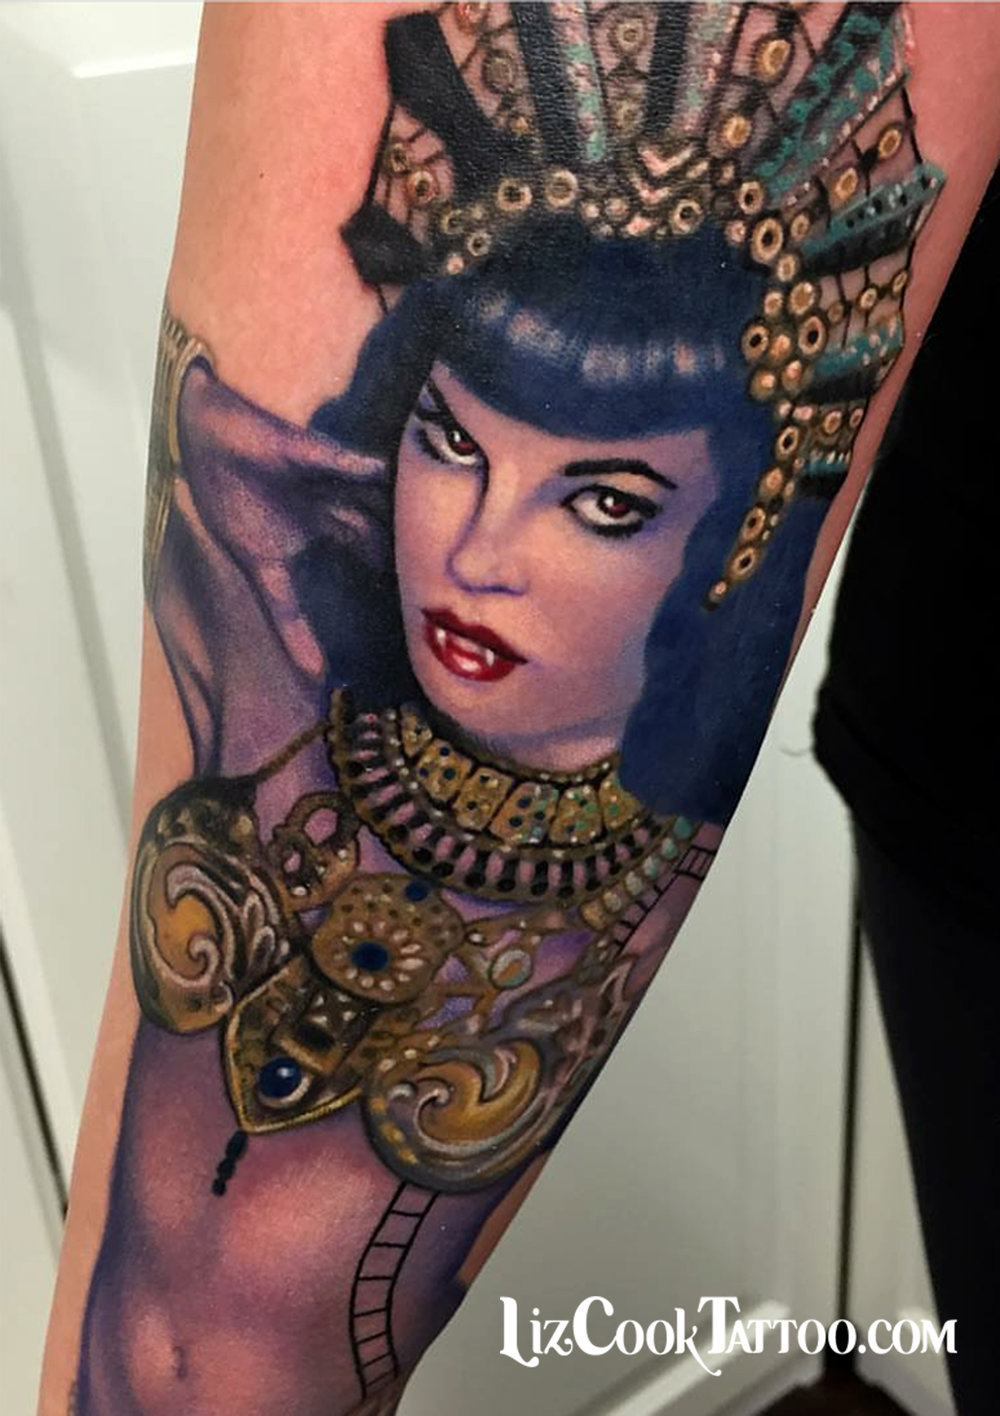 Liz Cook Tattoo Pinup Betty Page Olivia D Queen of the Damned Color Illustrative Realism.jpg